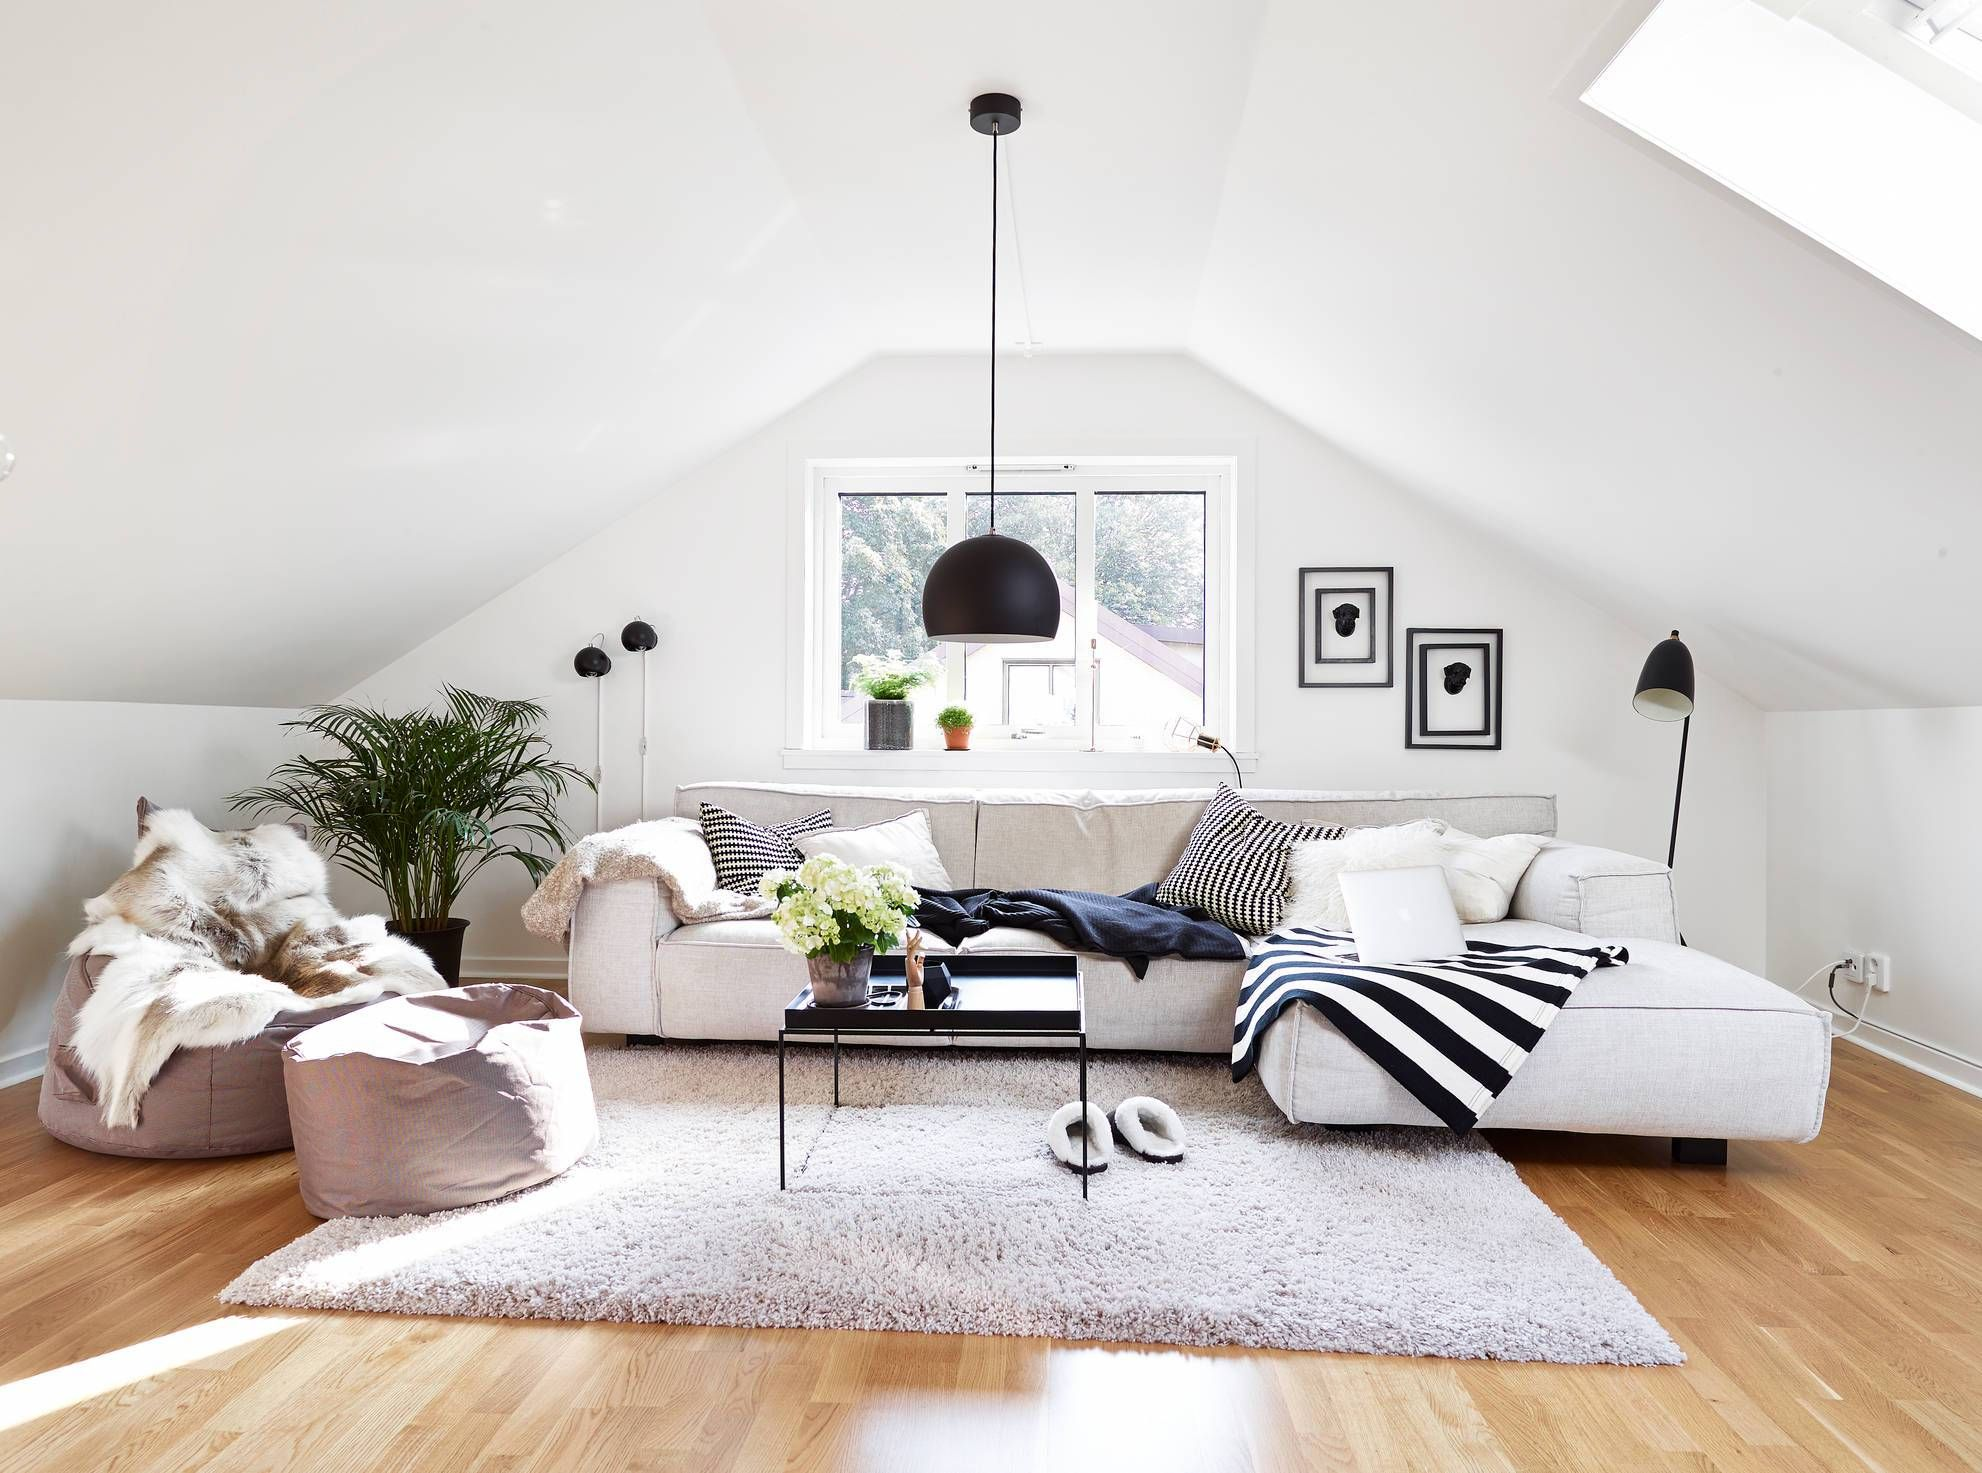 Living room in Scandinavian style (117 design photo solutions)